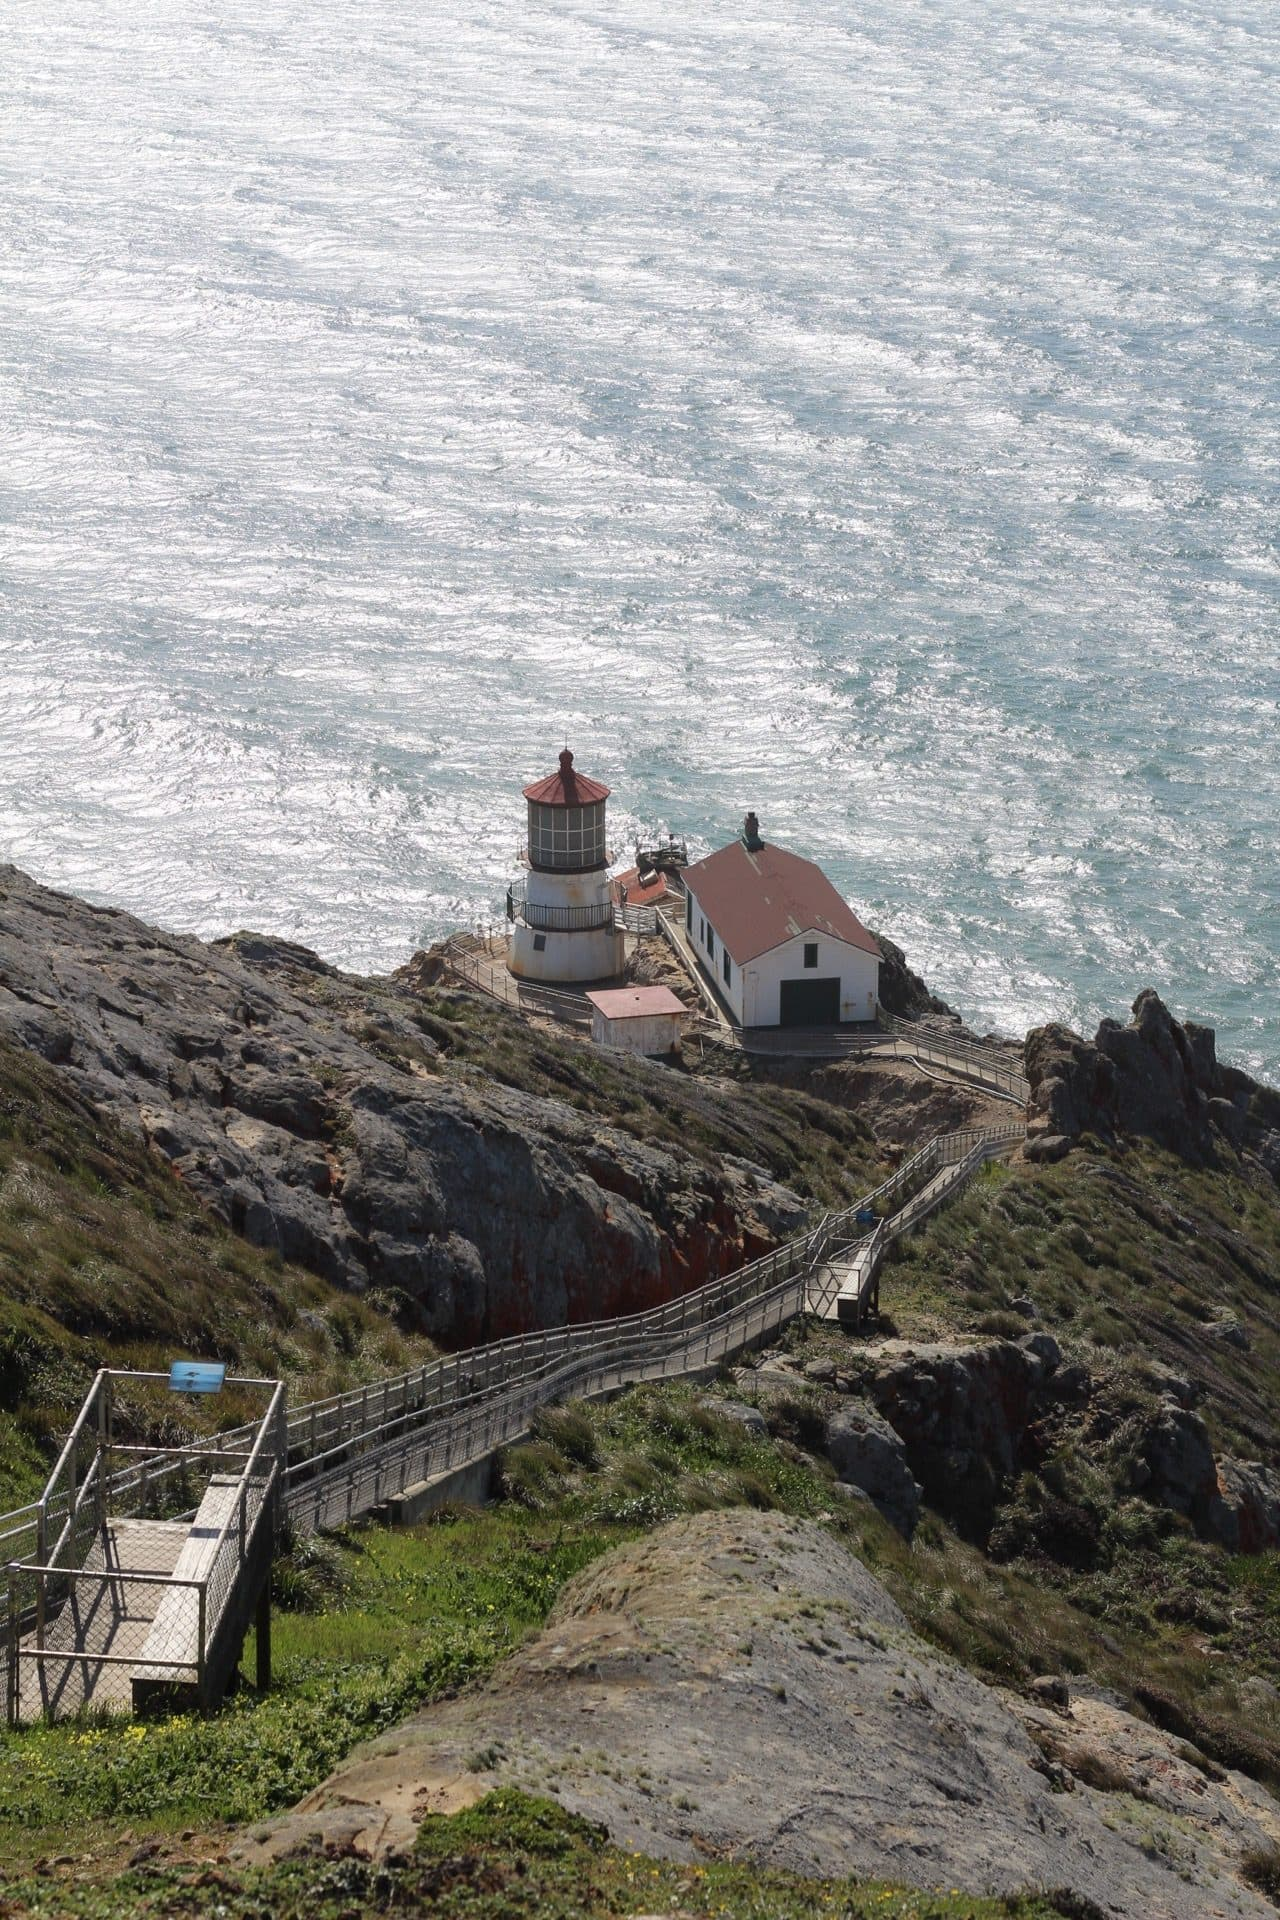 Point Reyes Lighthouse at Point Reyes National Seashore, California